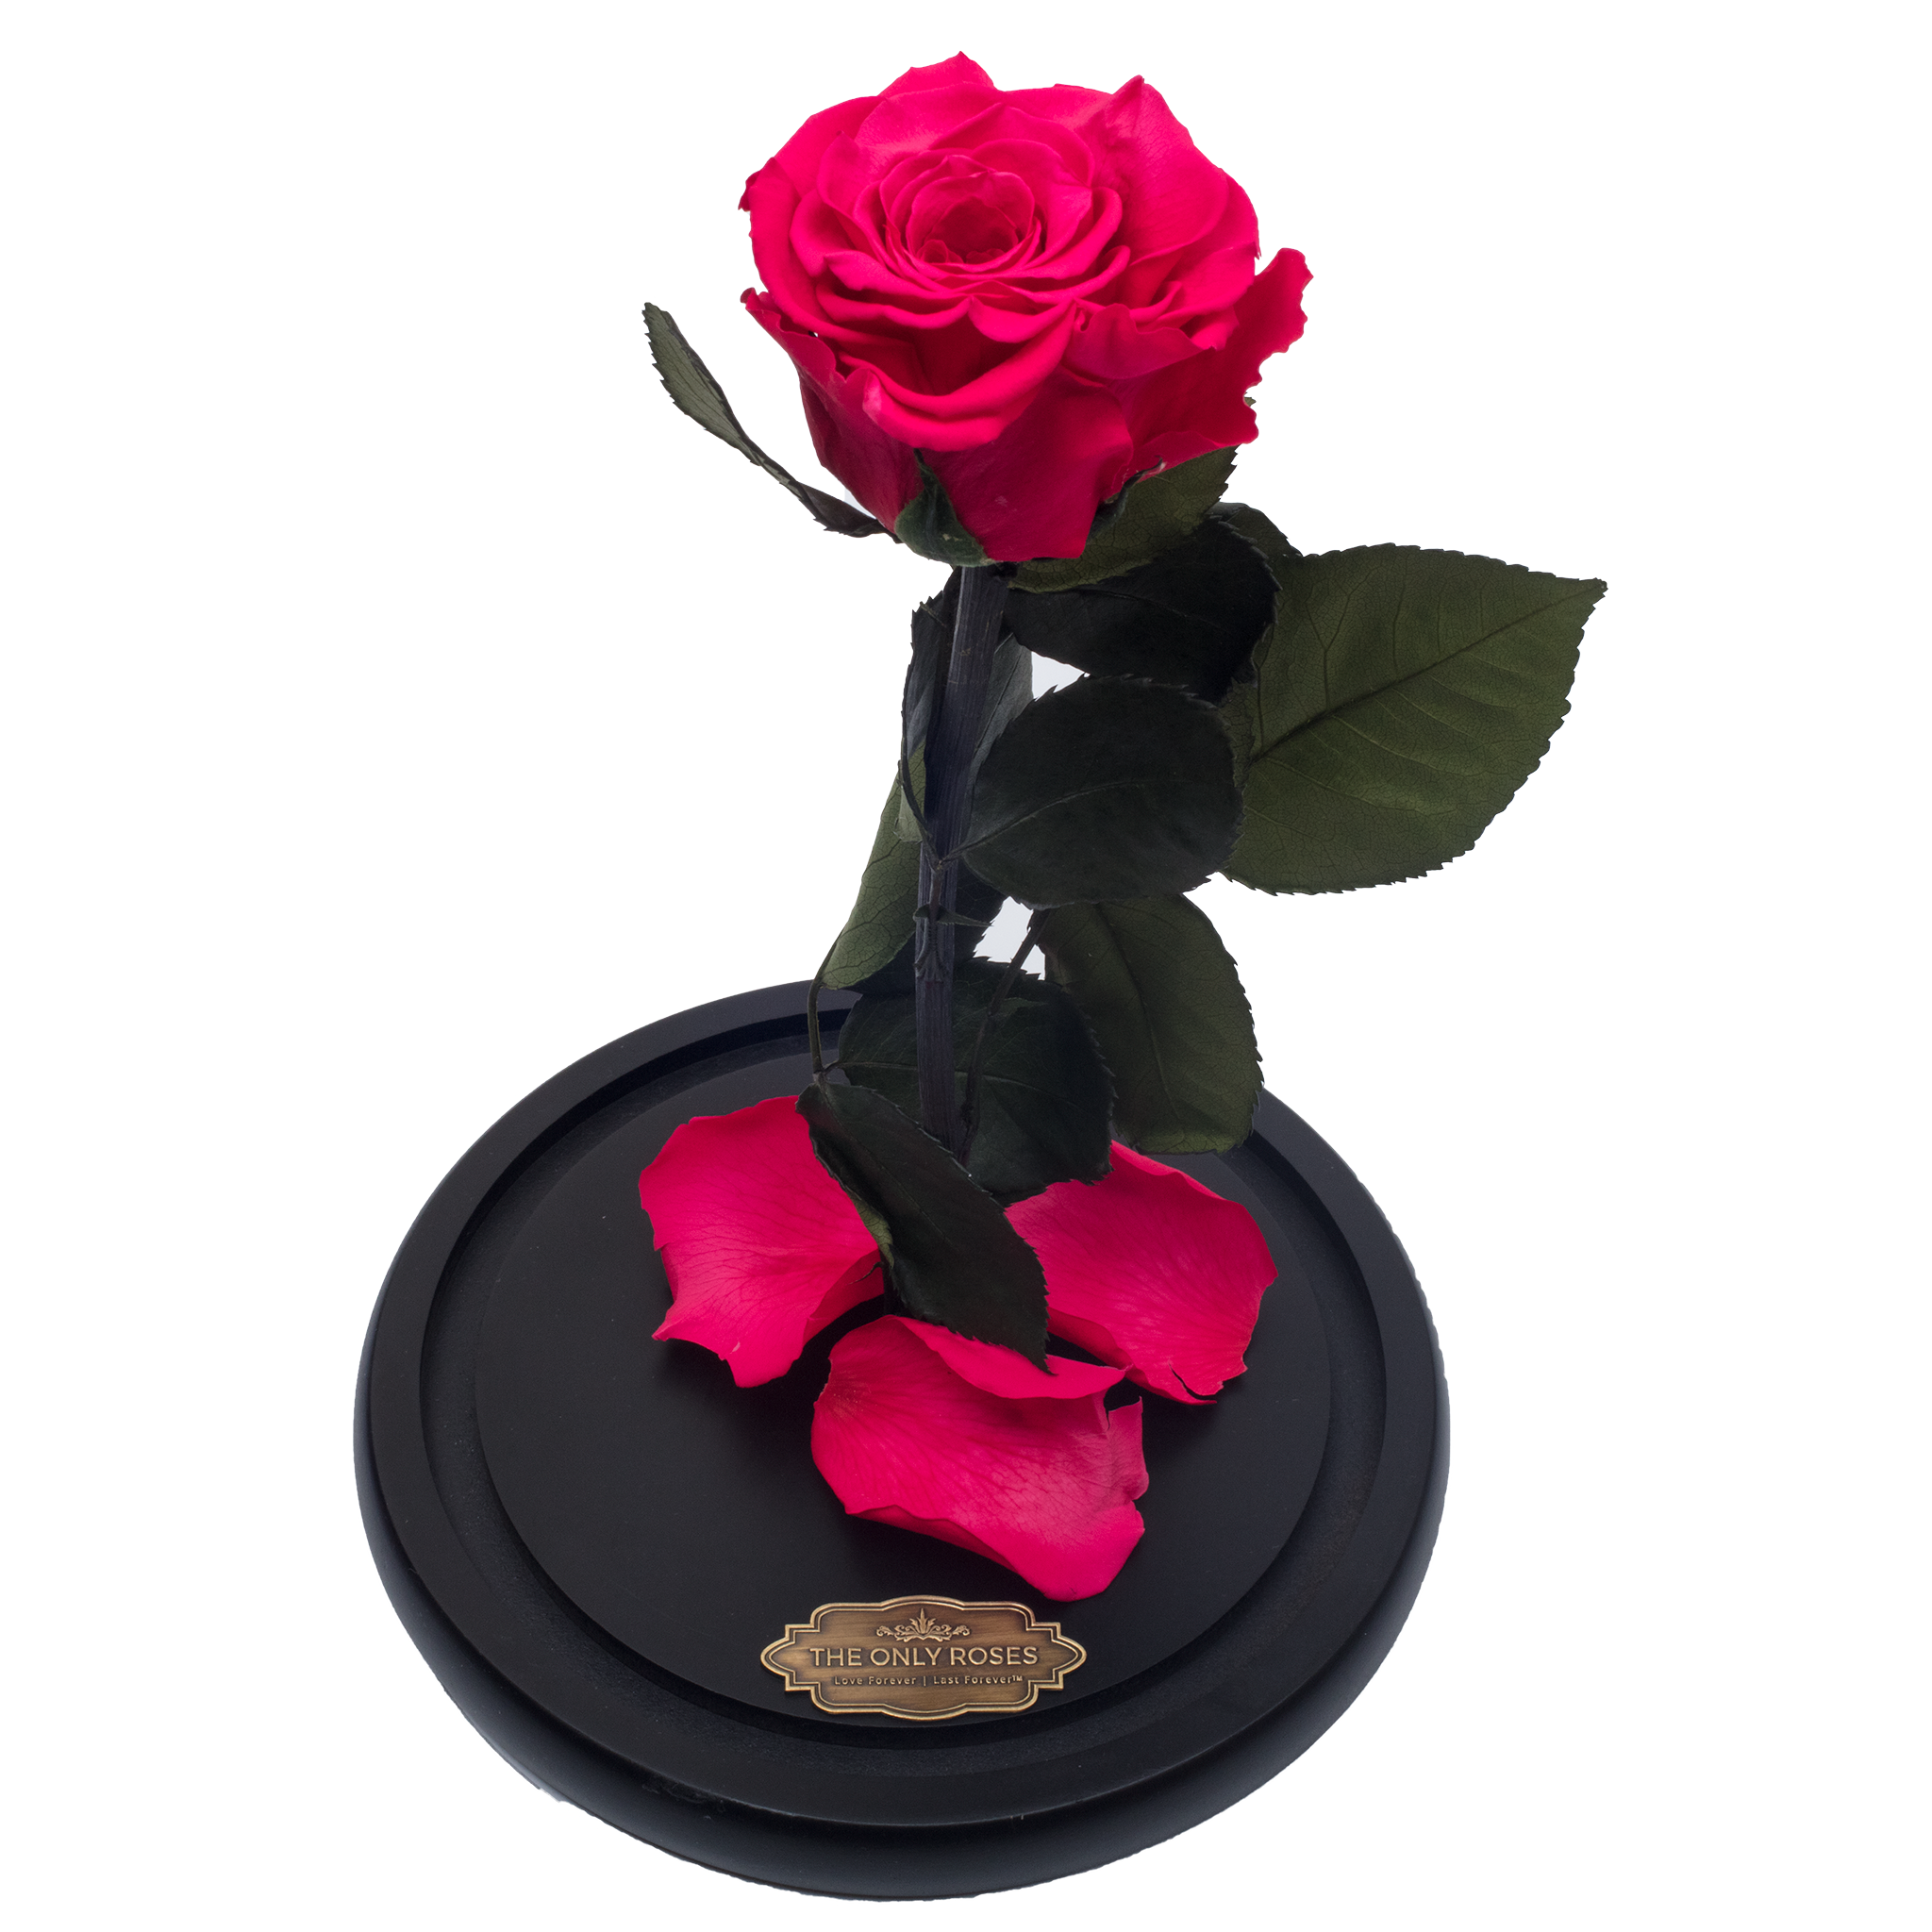 Beauty and the beast glass dome regular the only roses watermelon red preserved rose beauty and the beast glass dome the only roses izmirmasajfo